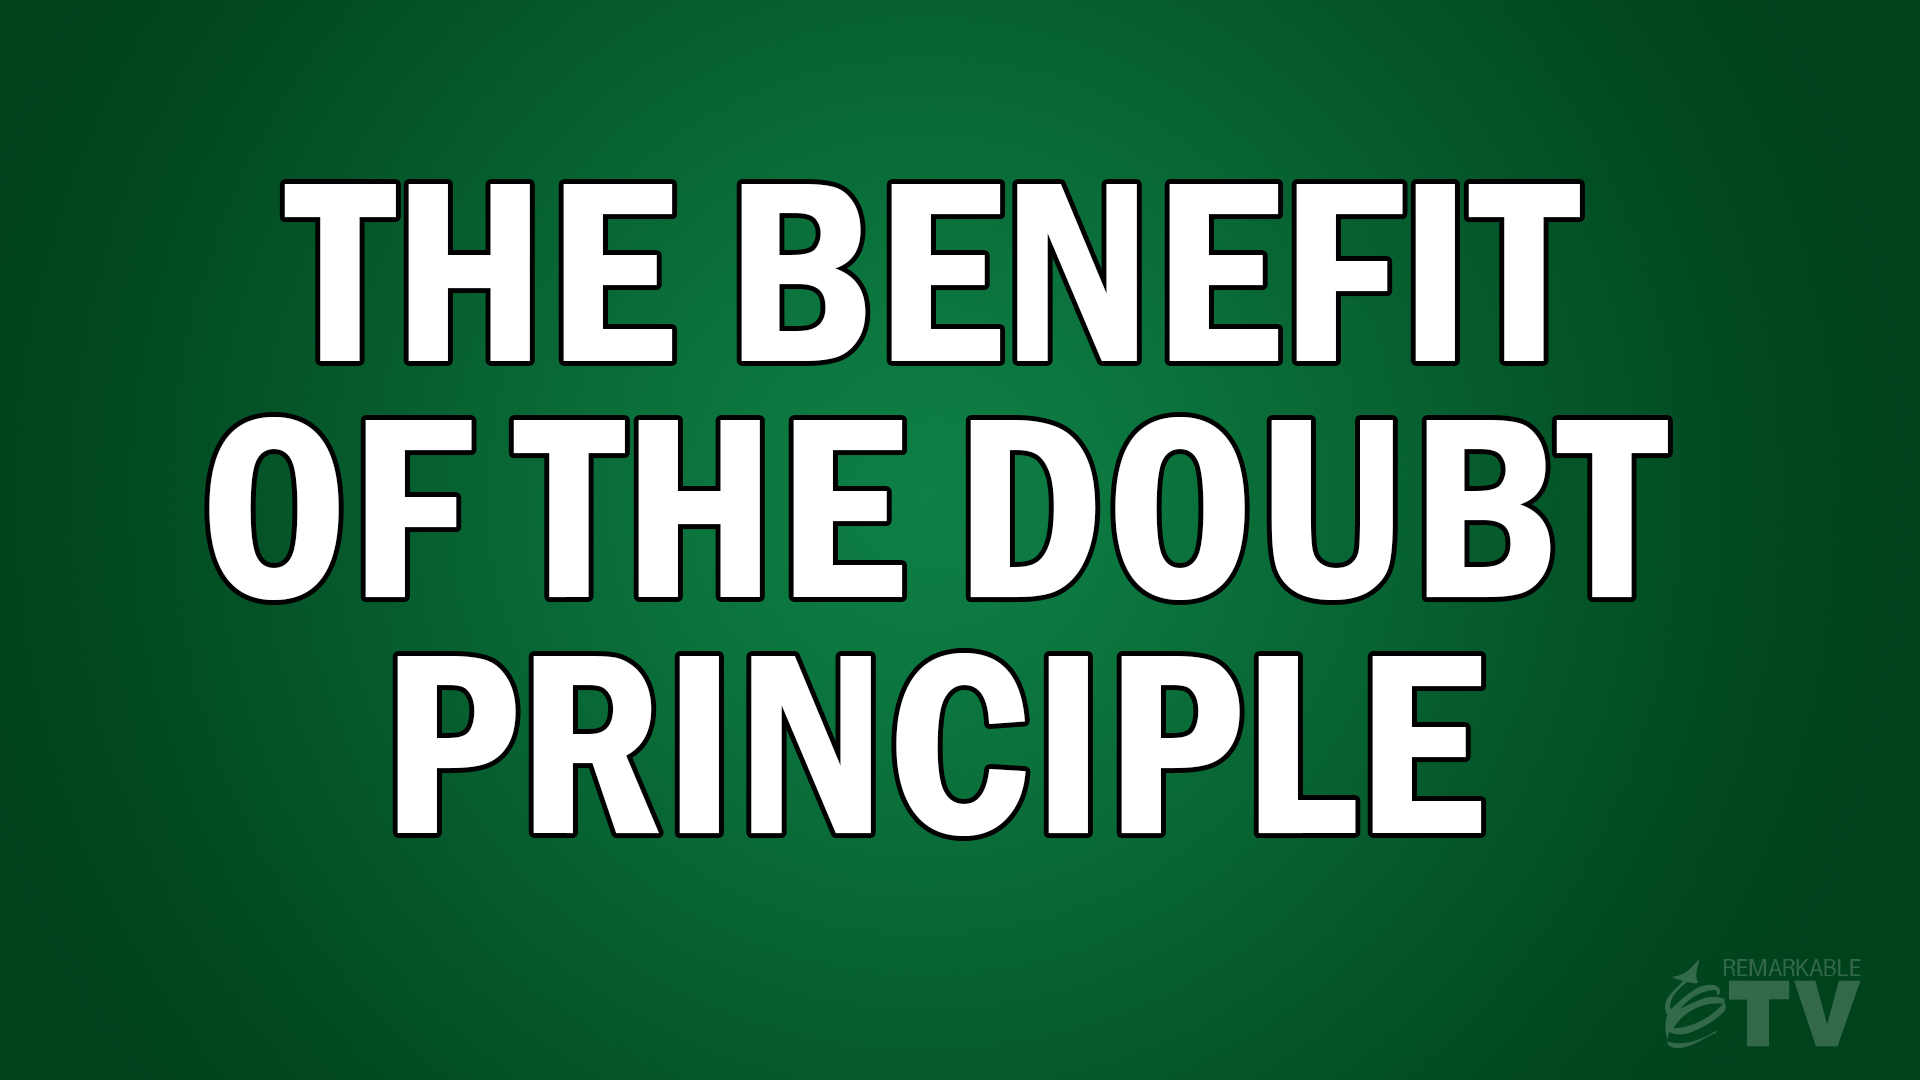 The Benefit of the Doubt Principle - Remarkable TV with Kevin Eikenberry